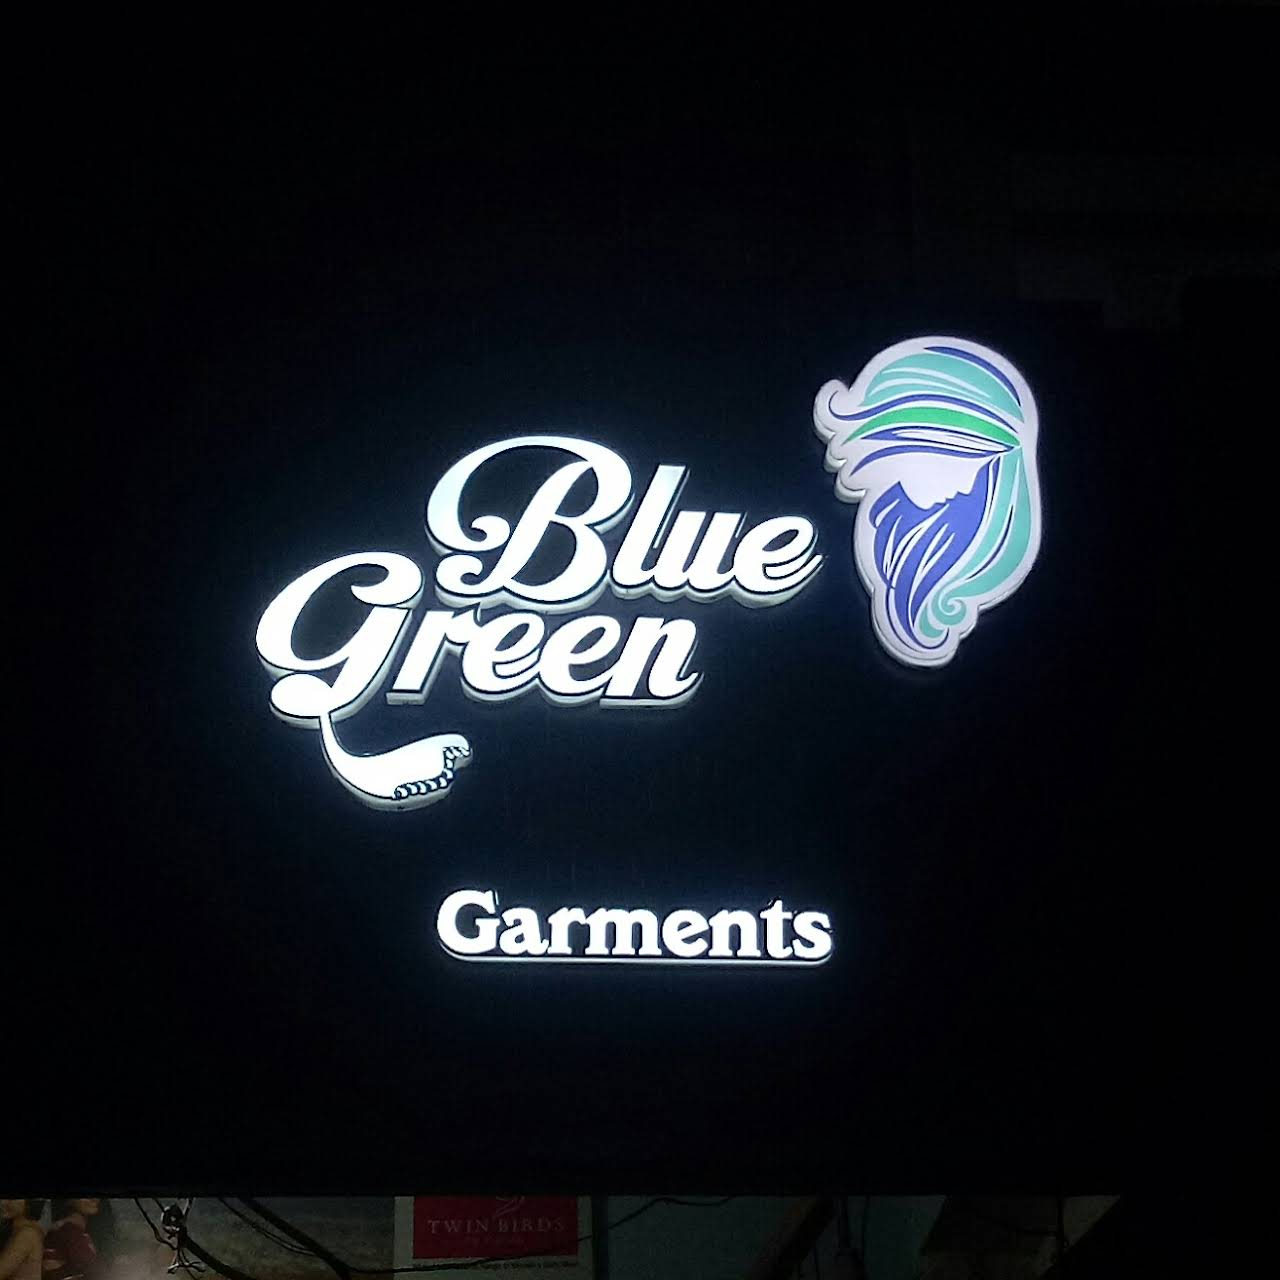 Led sign board, led sign board manufacturer in Coimbatore